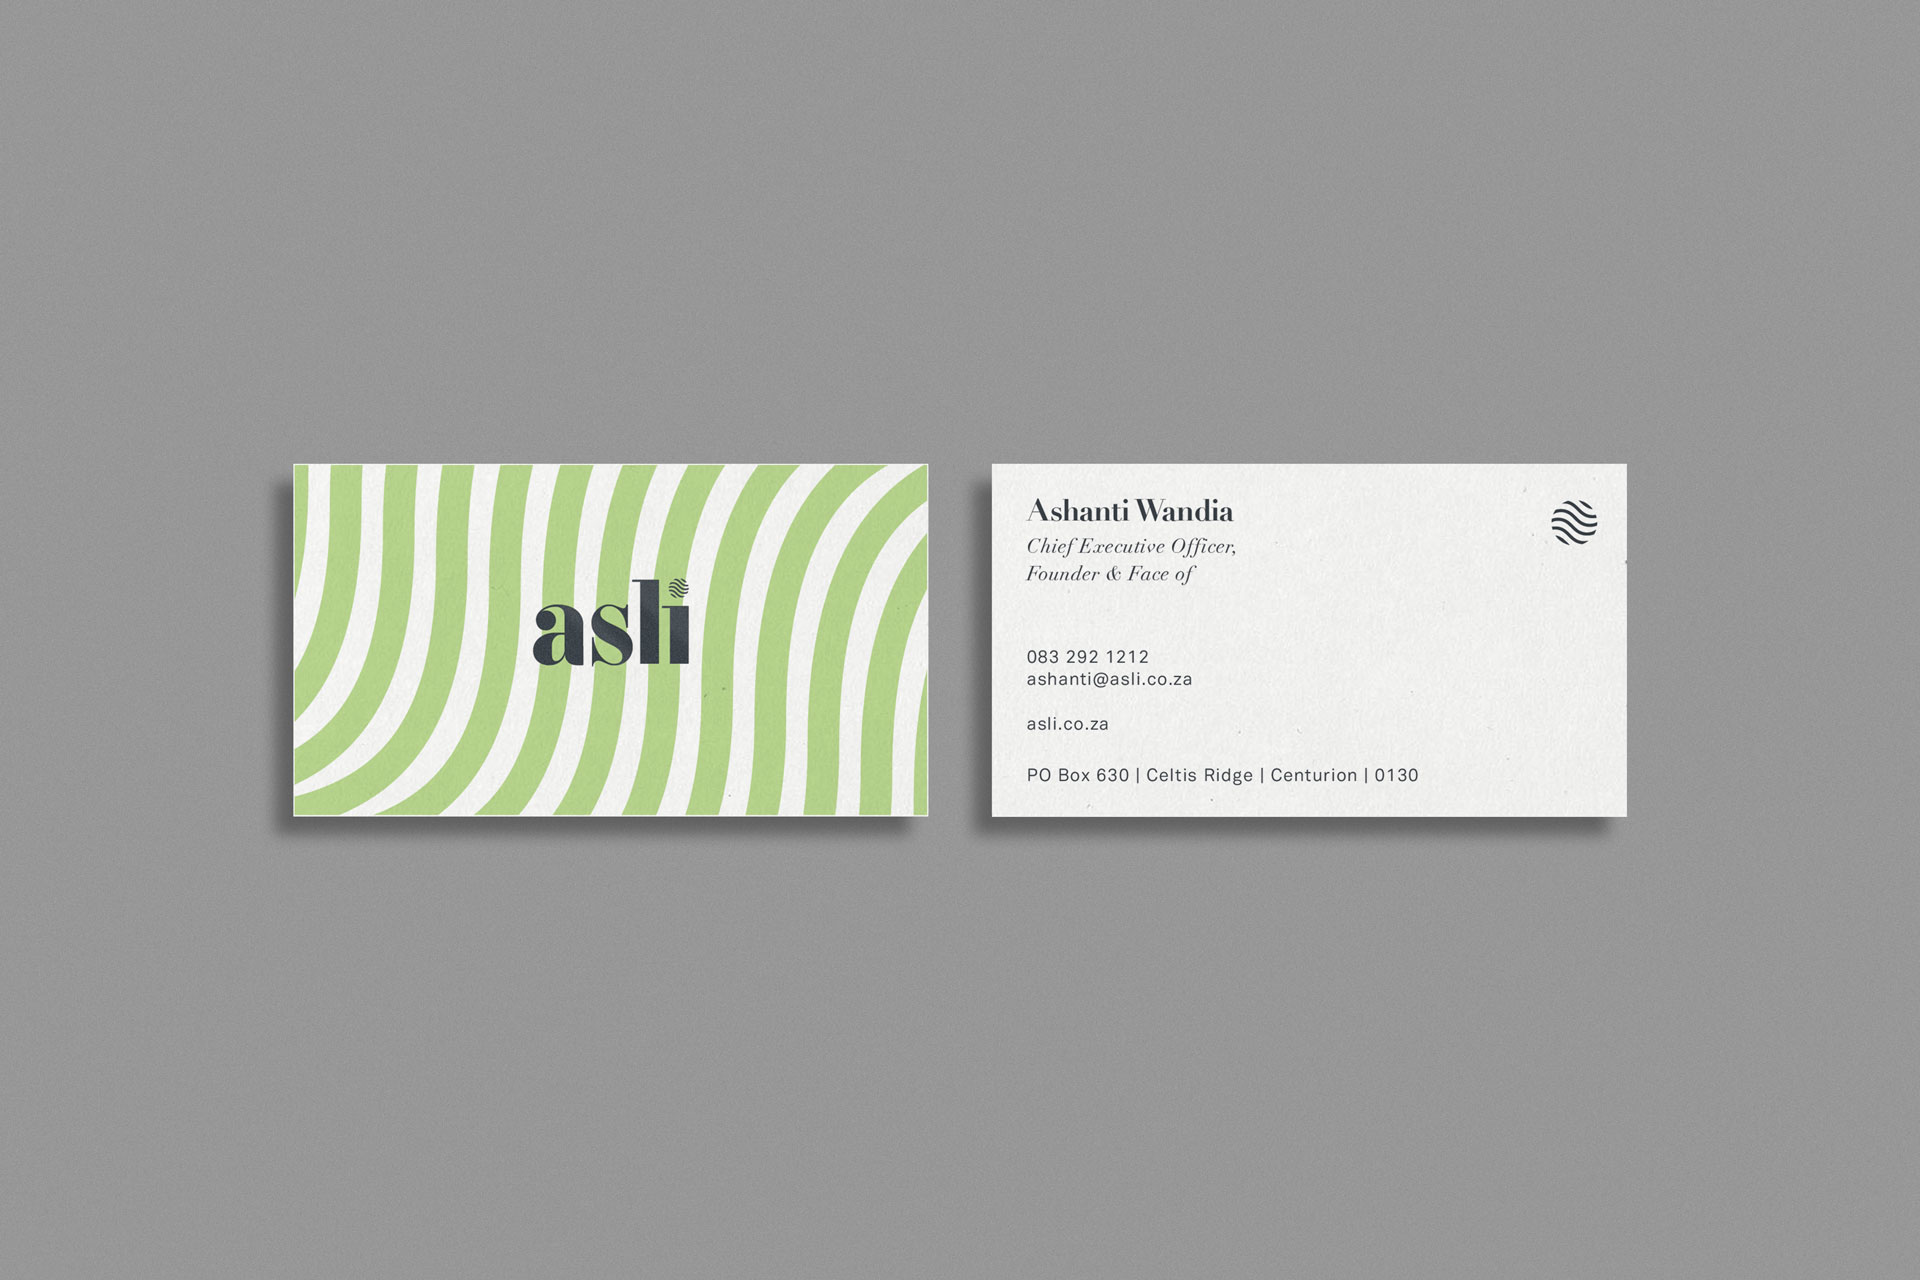 asli Corporate Identity Packaging Design—business cards